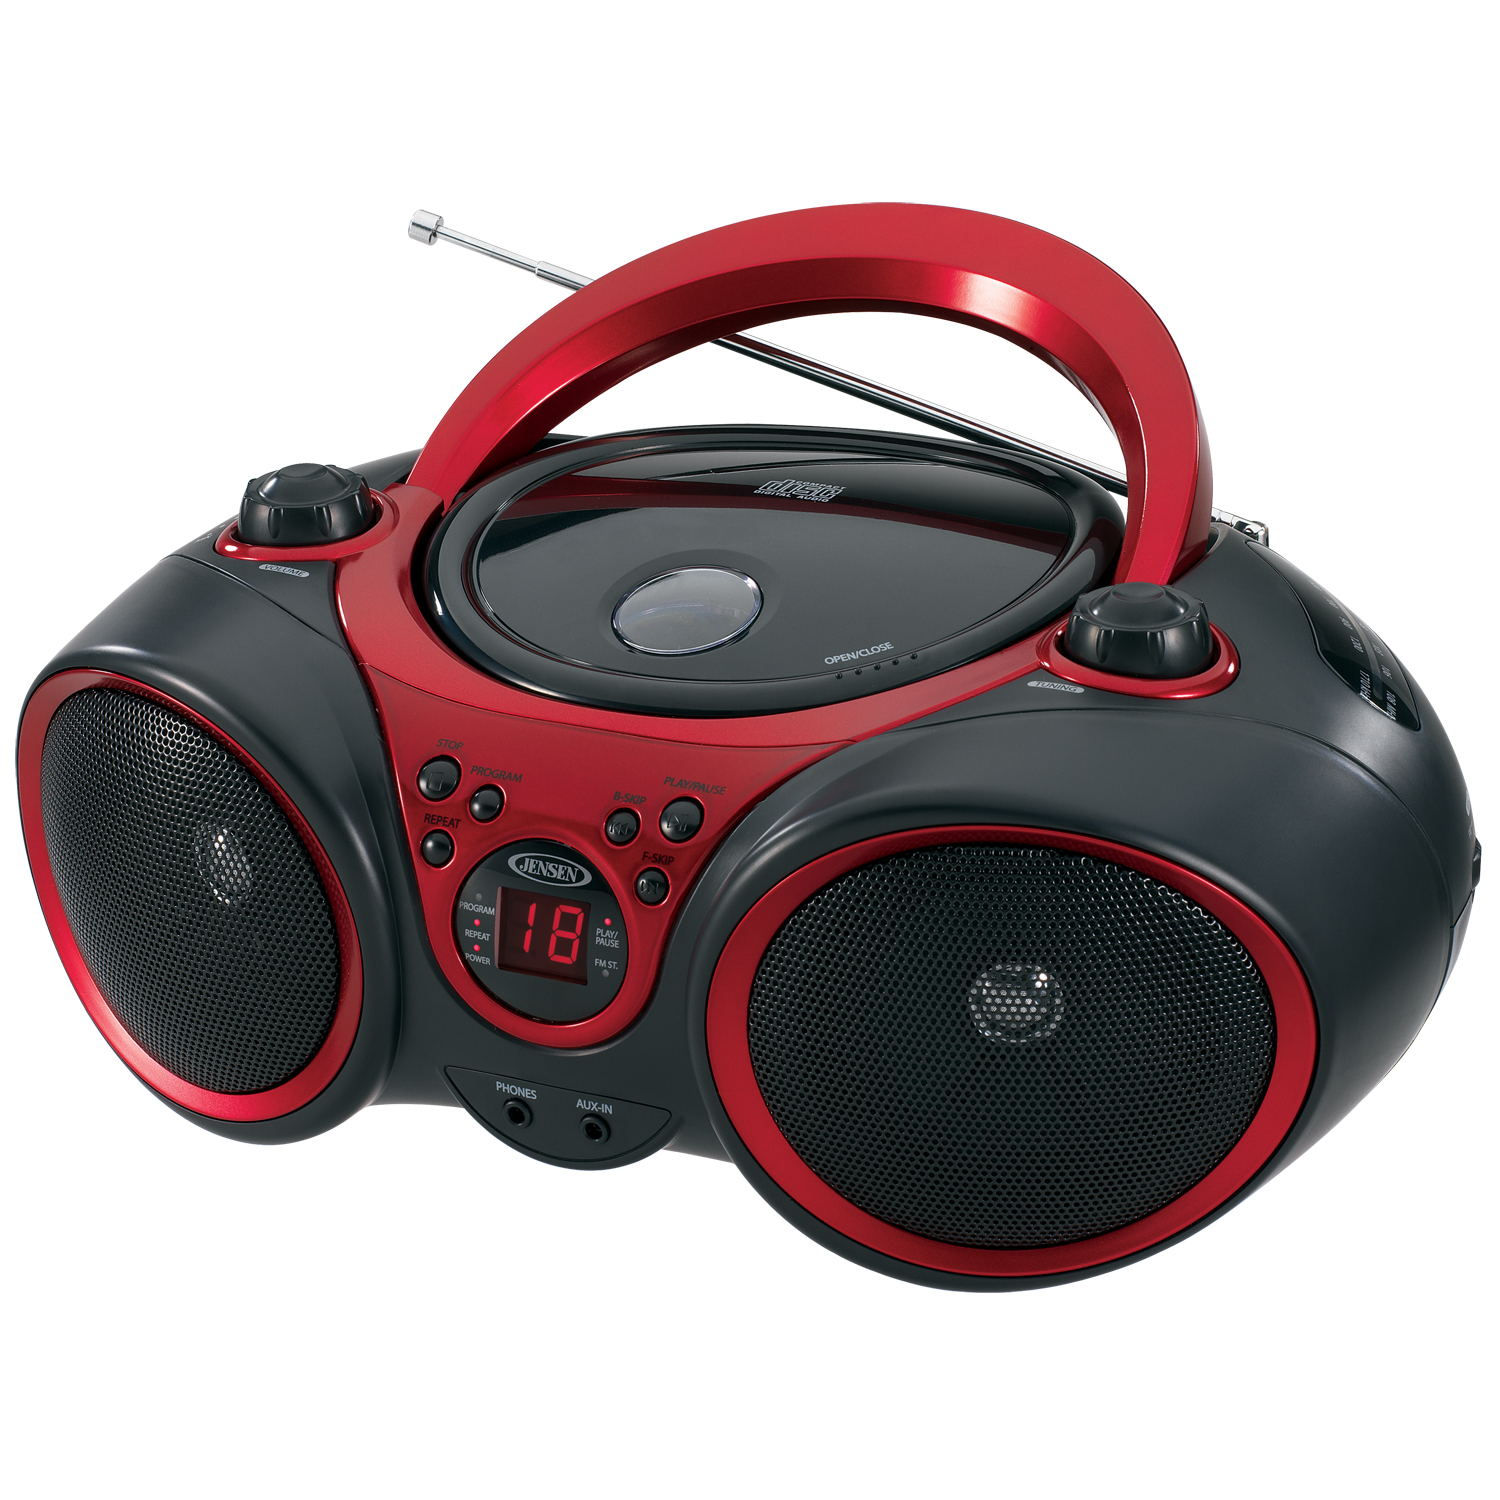 Jensen CD-490 Portable Stereo CD Player with AM FM Stereo by Jensen